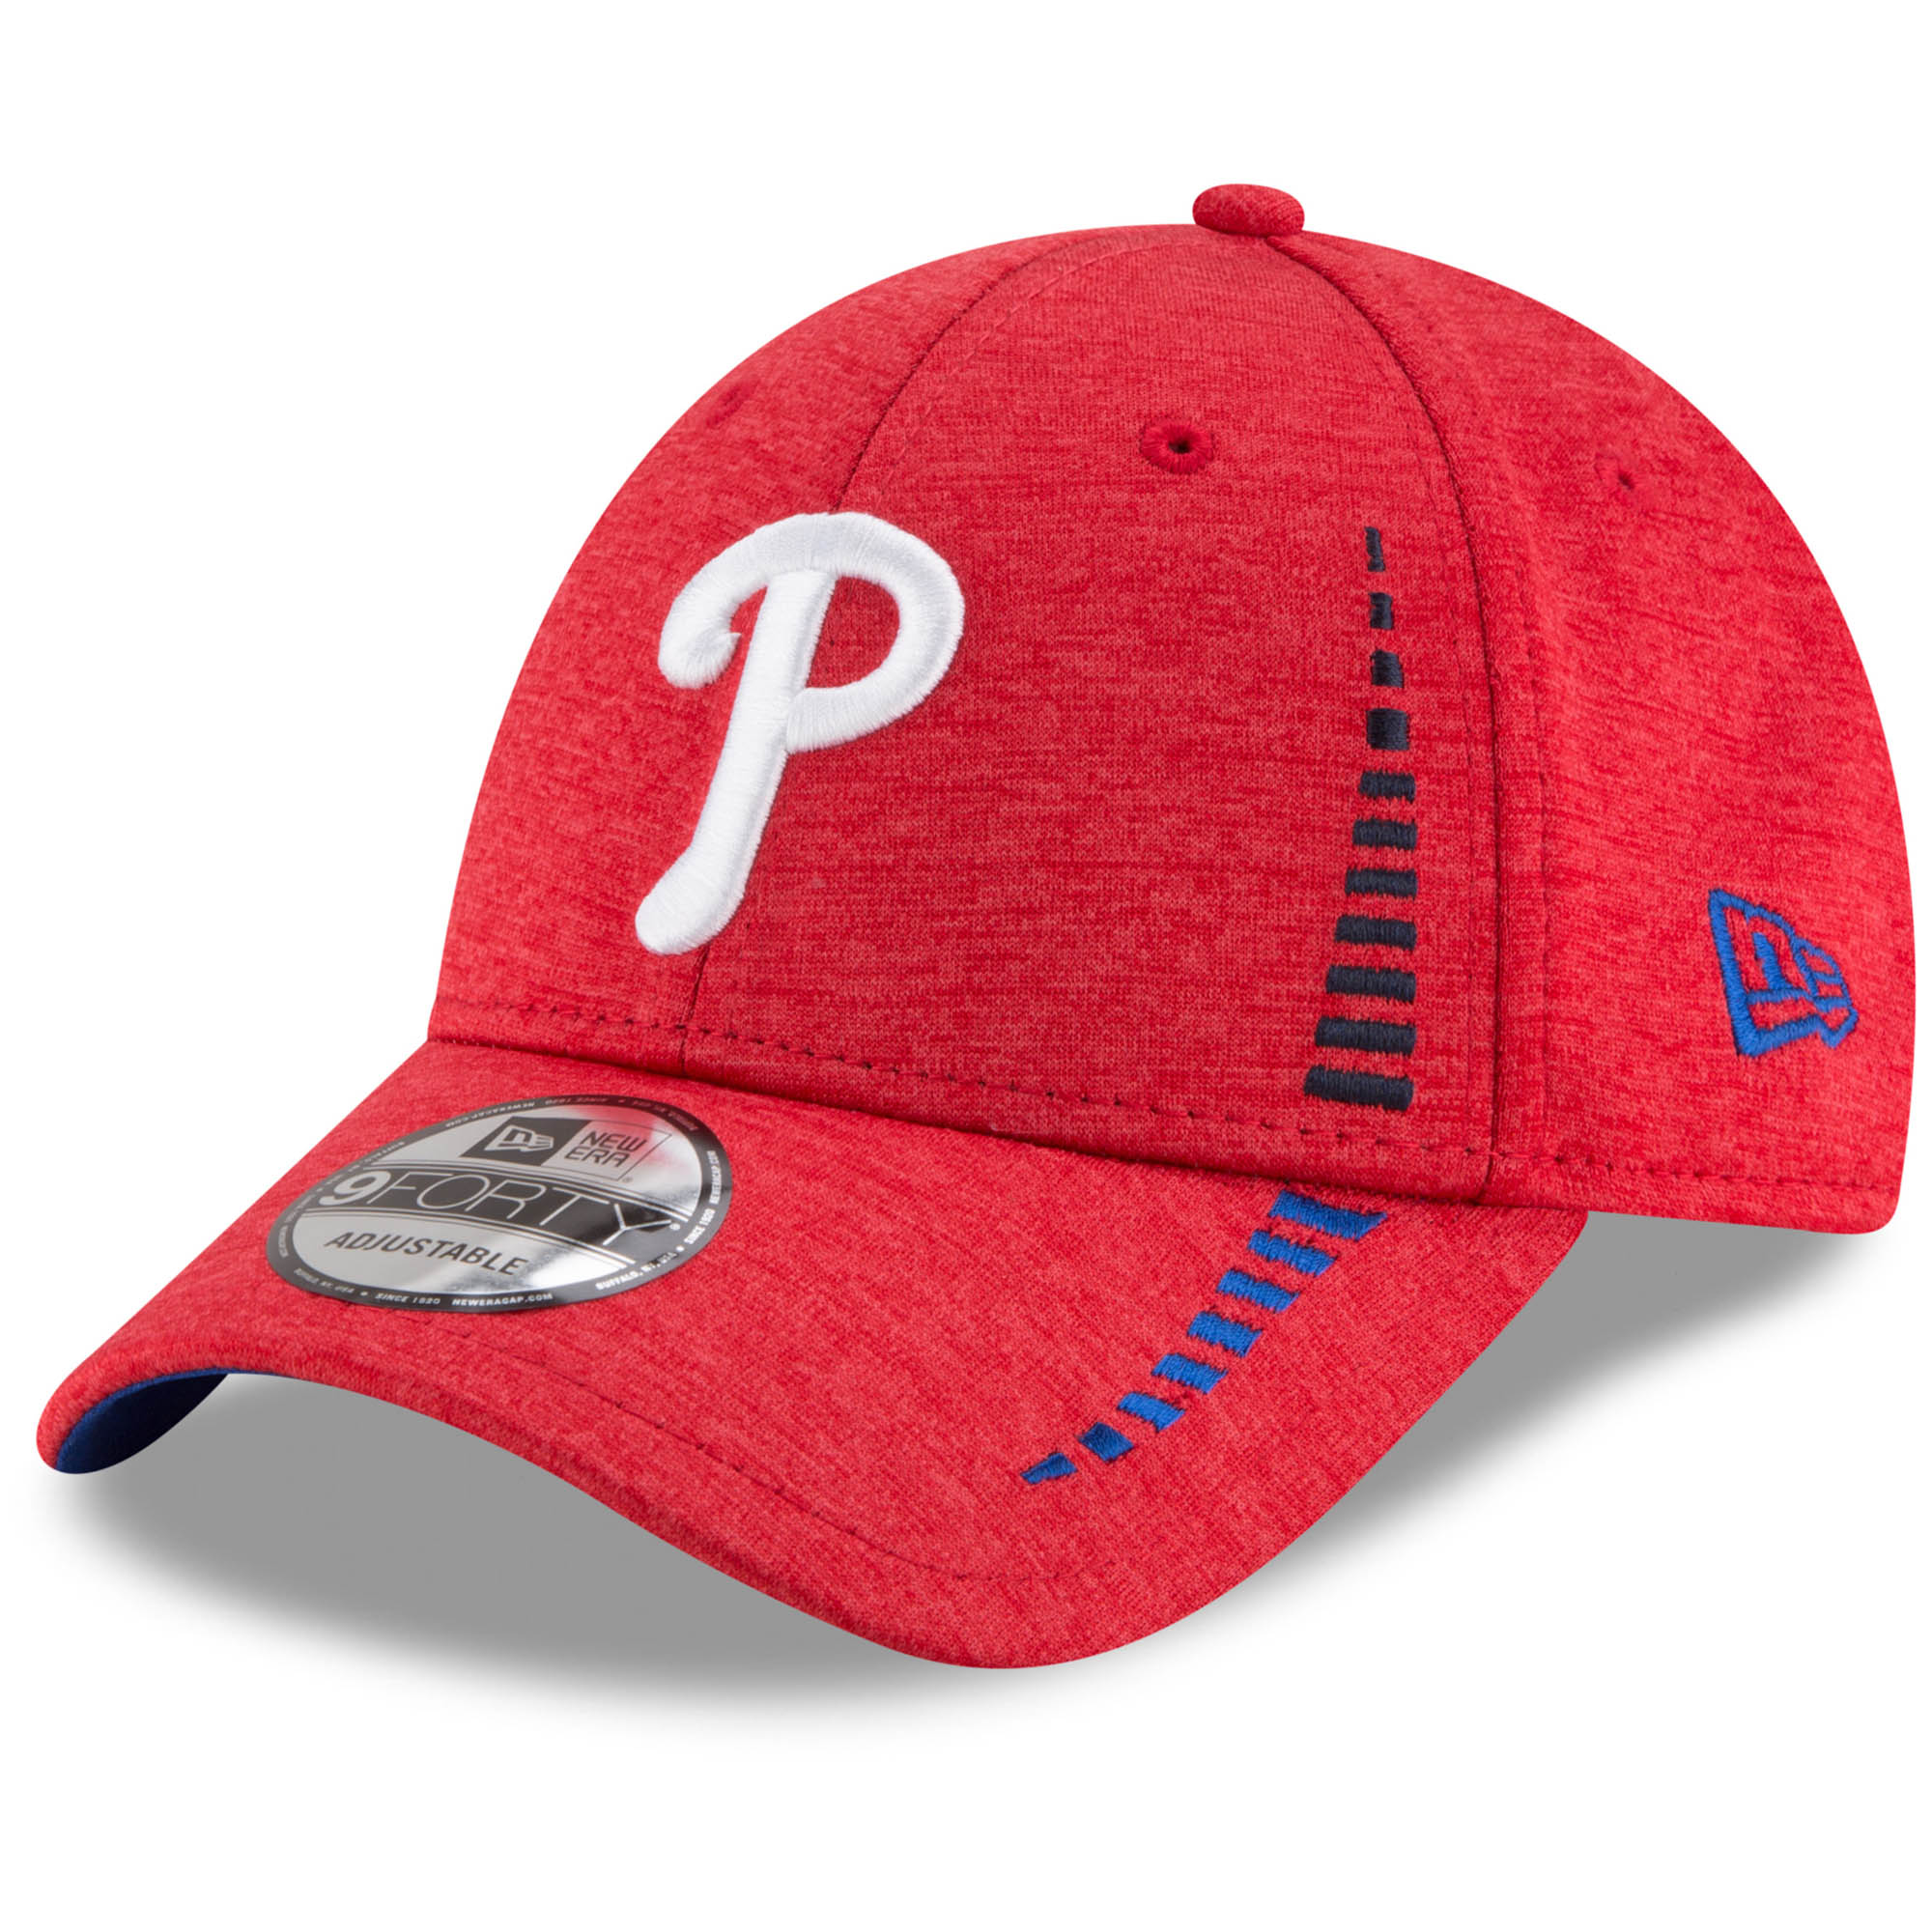 Philadelphia Phillies New Era Speed Shadow Tech 9FORTY Adjustable Hat - Red - OSFA